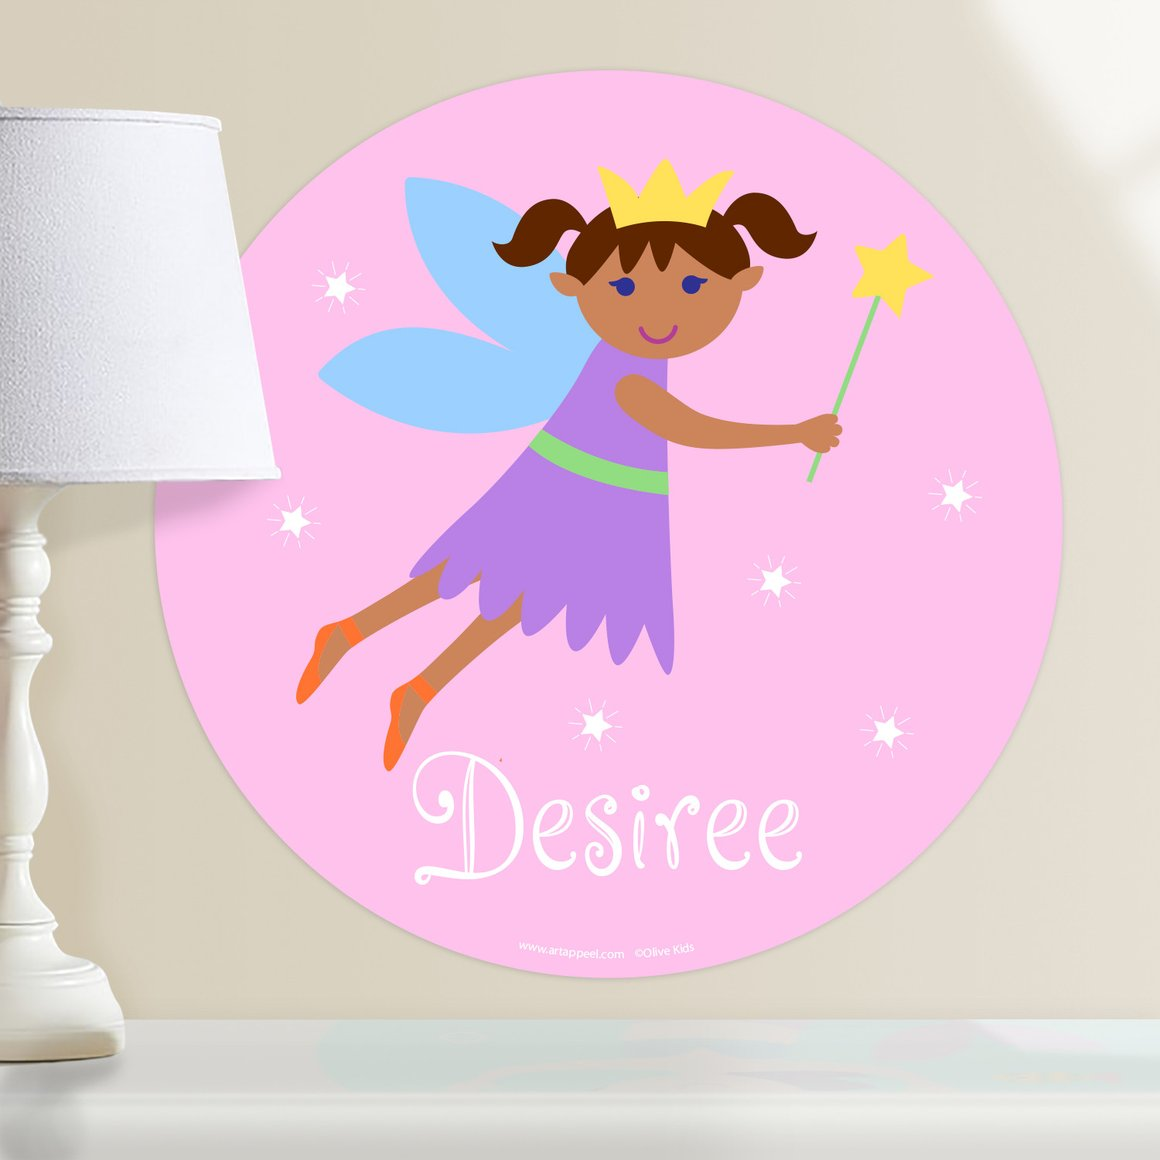 Fairy Princess (Dark Skin, Dark Hair) Personalized Kids Wall Dotz Decal